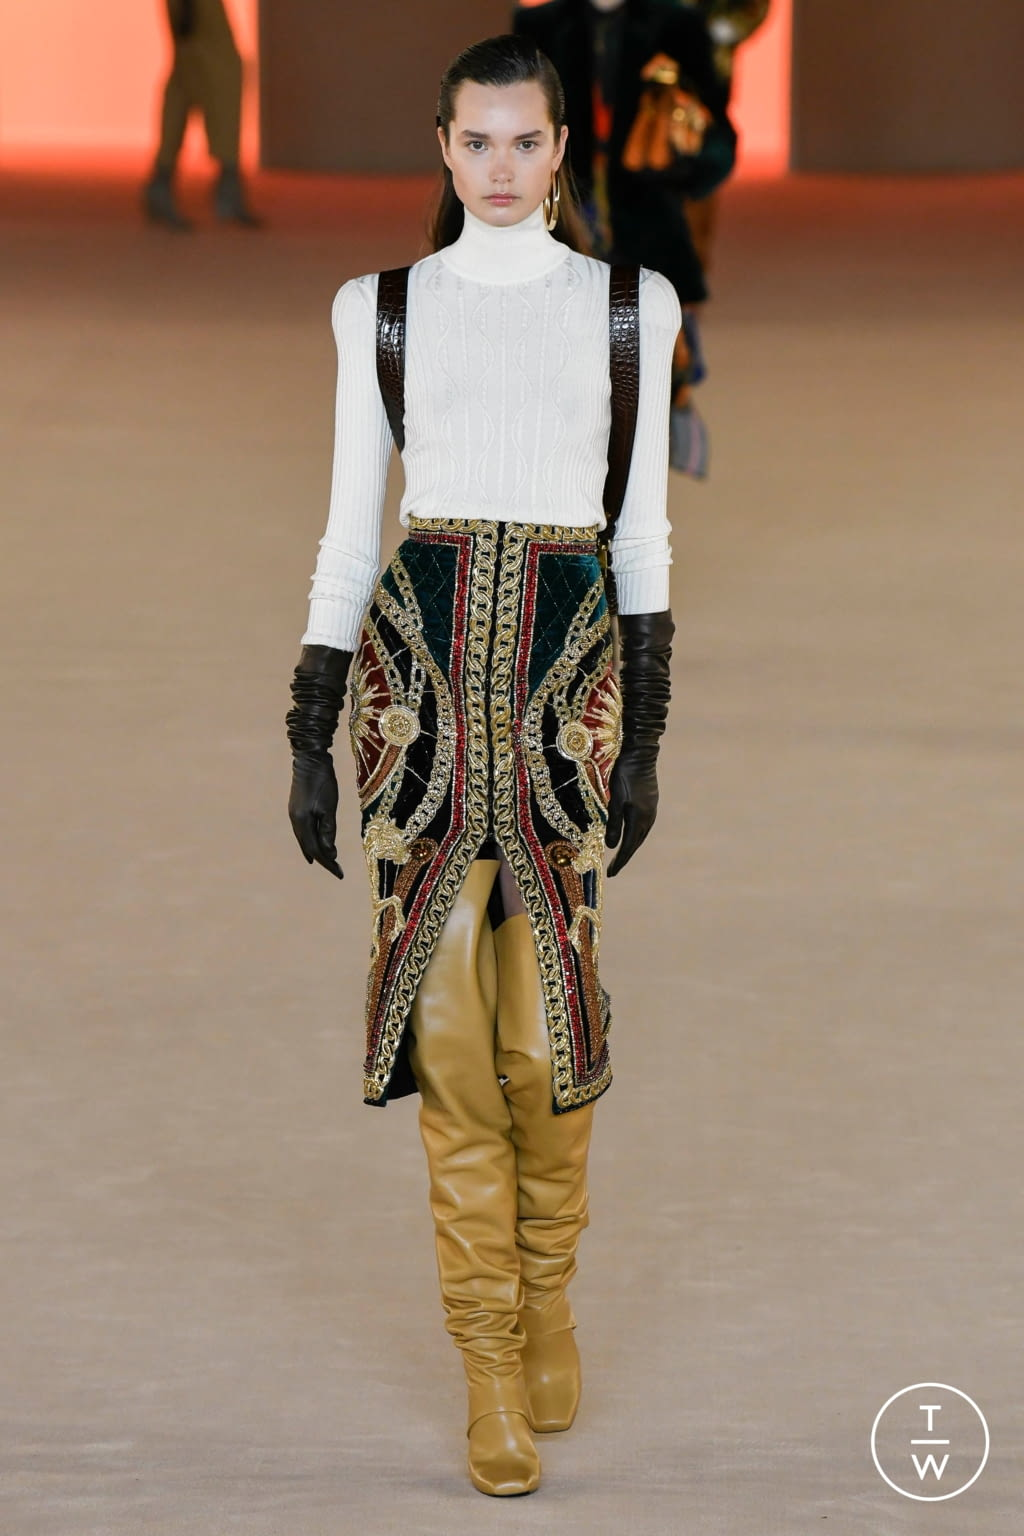 Fashion Week Paris Fall/Winter 2020 look 22 de la collection Balmain womenswear